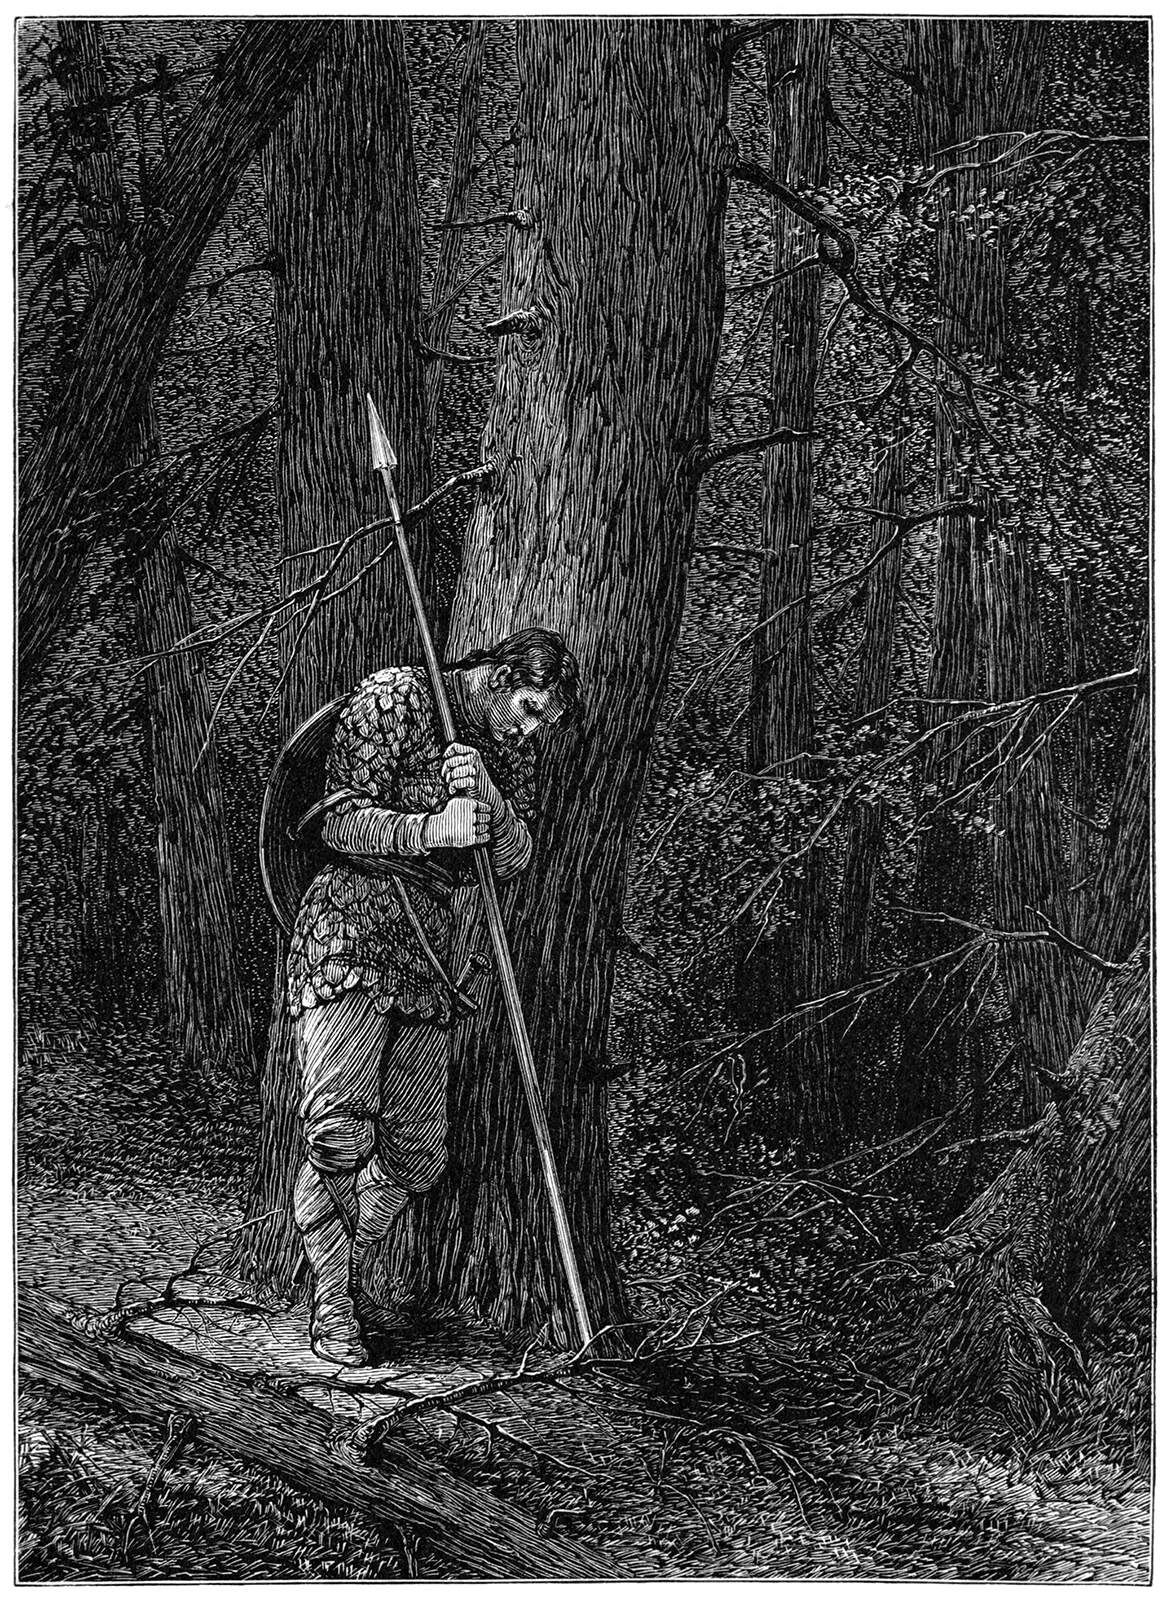 Warrior lost in forest